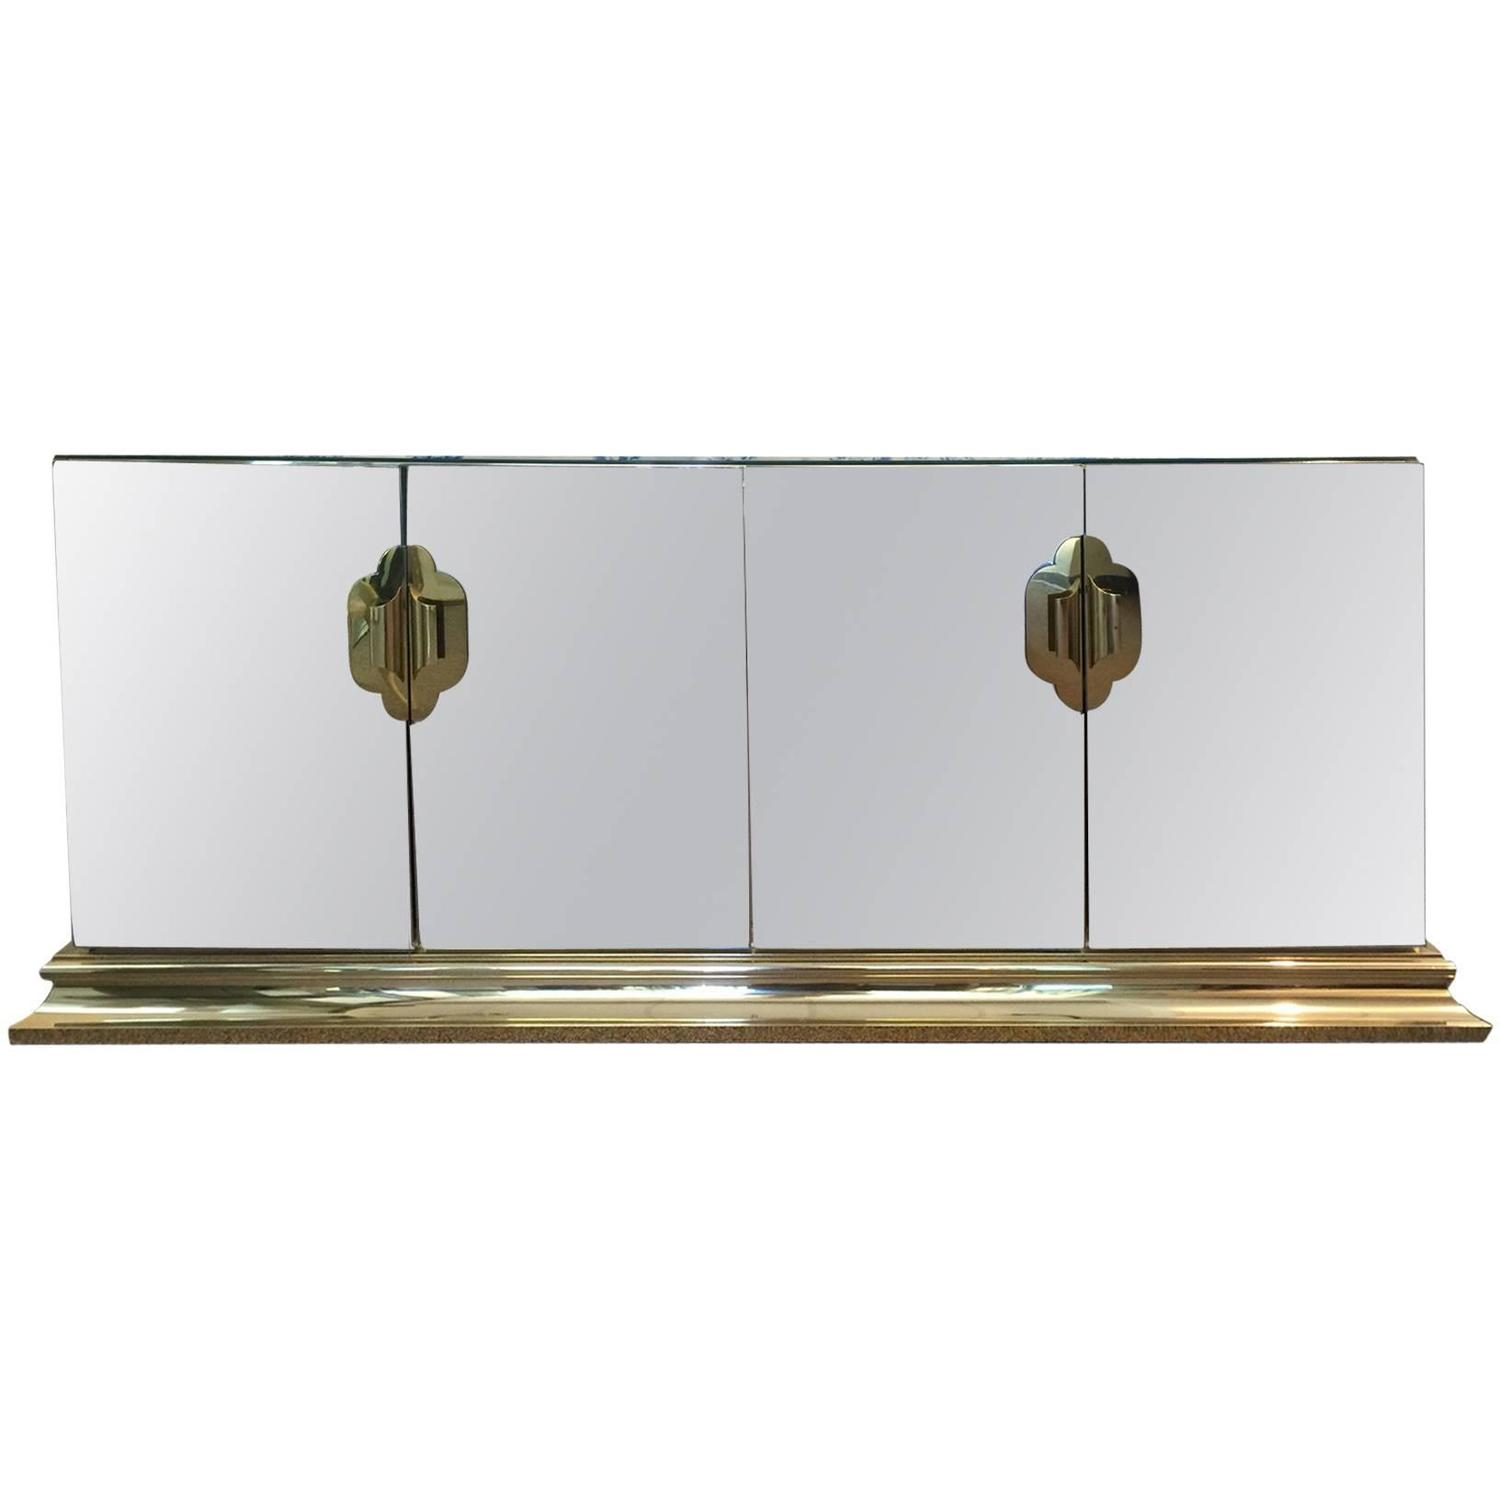 Furniture Sales Raleigh Nc Brass and Mirror Four-Door Credenza by Ello C. at 1stdibs